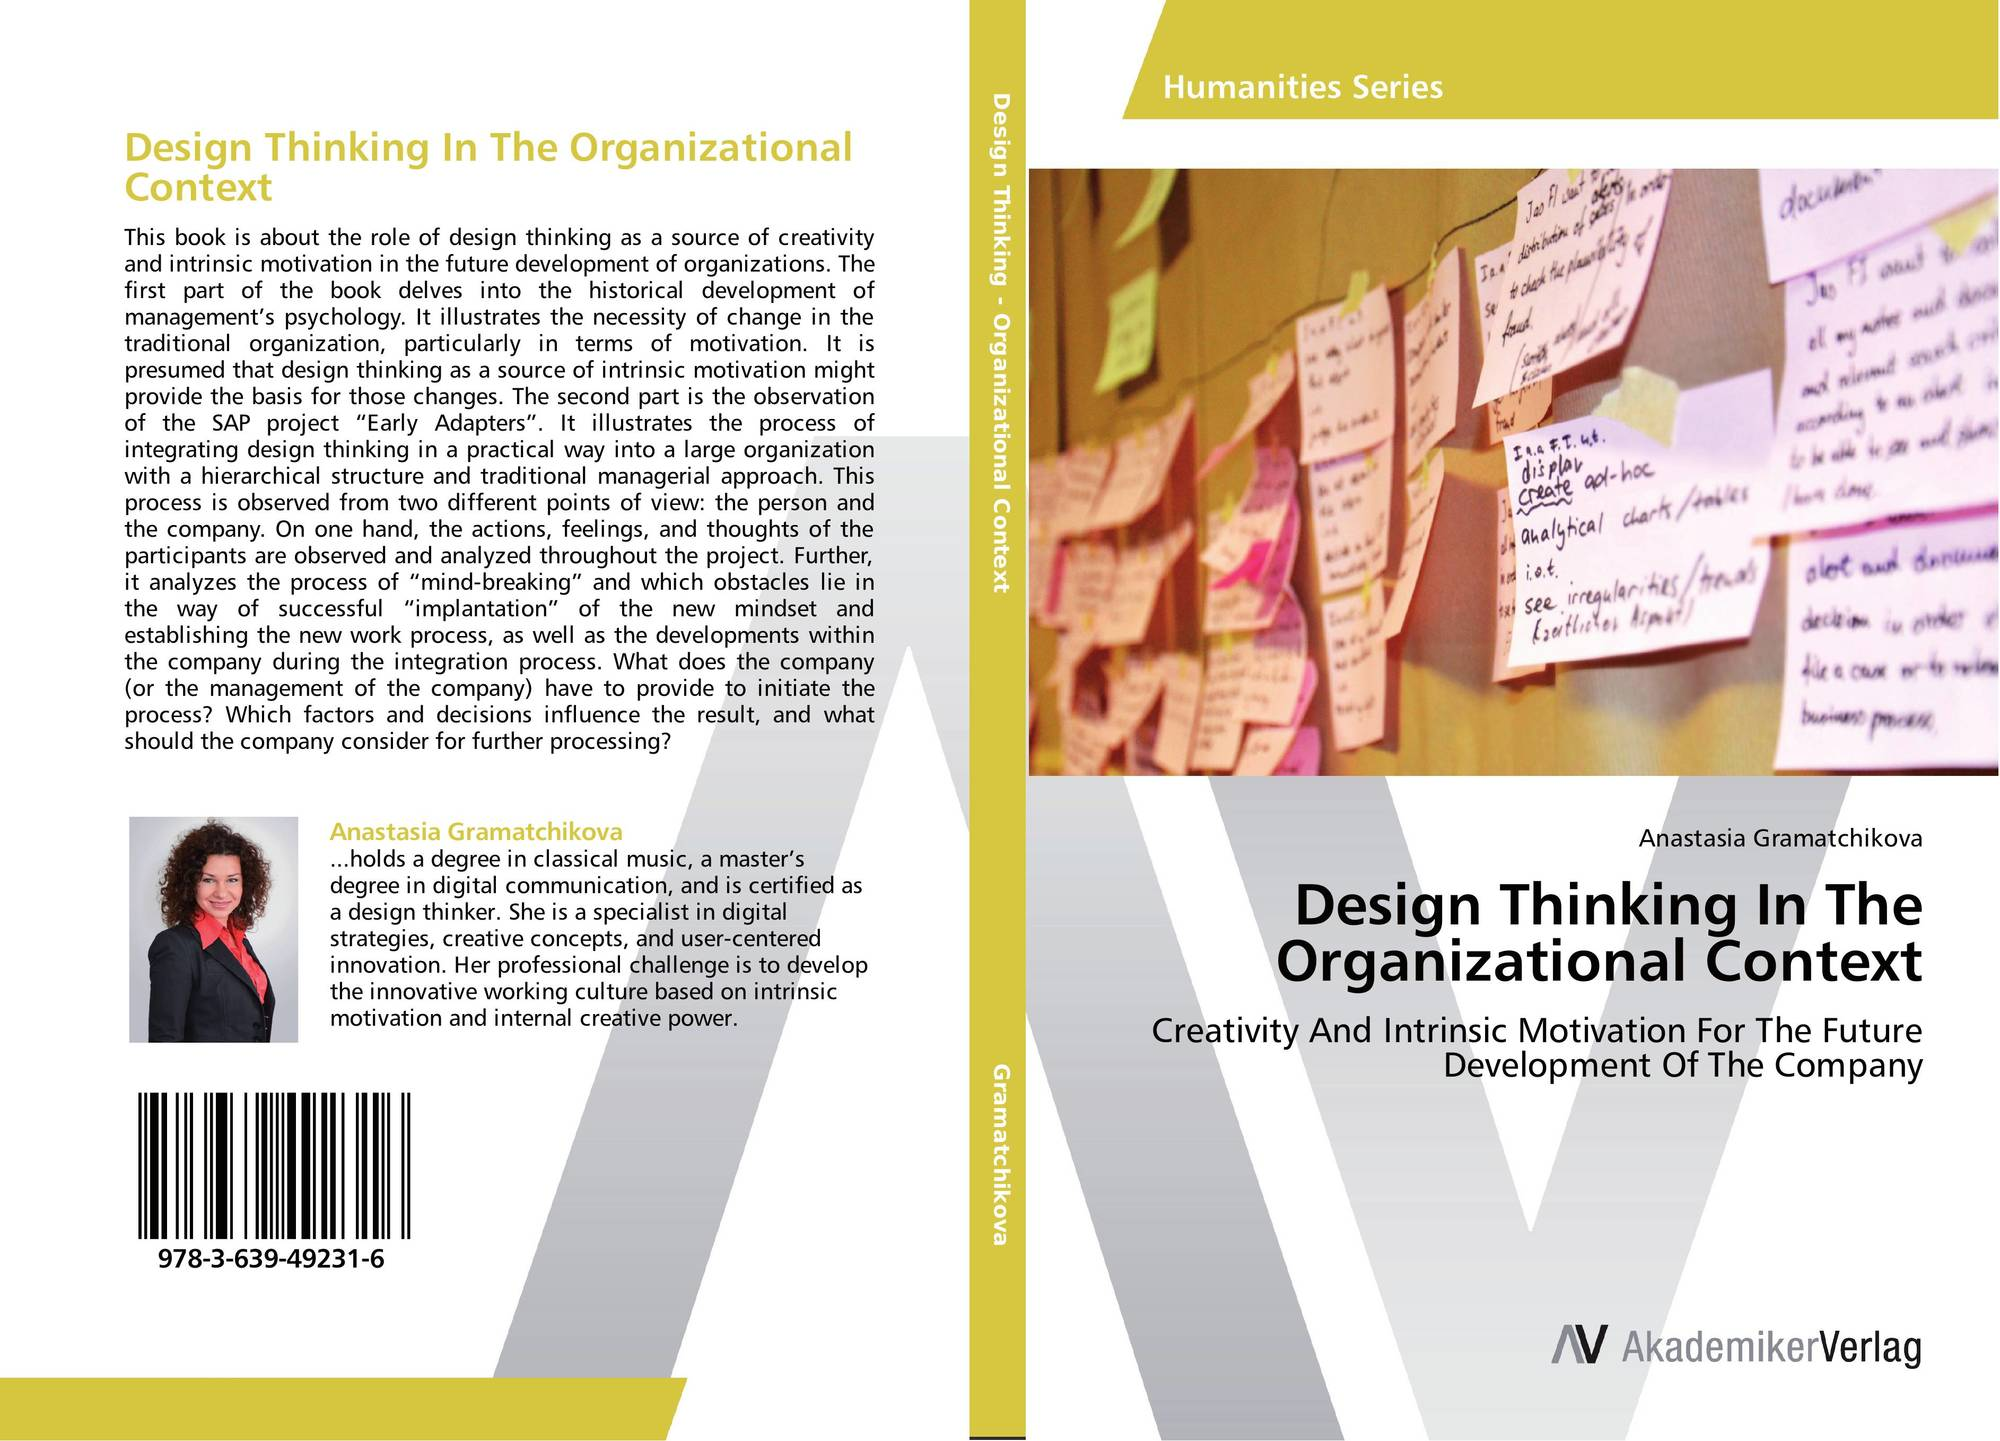 Design Thinking In The Organizational Context, 978-3-639